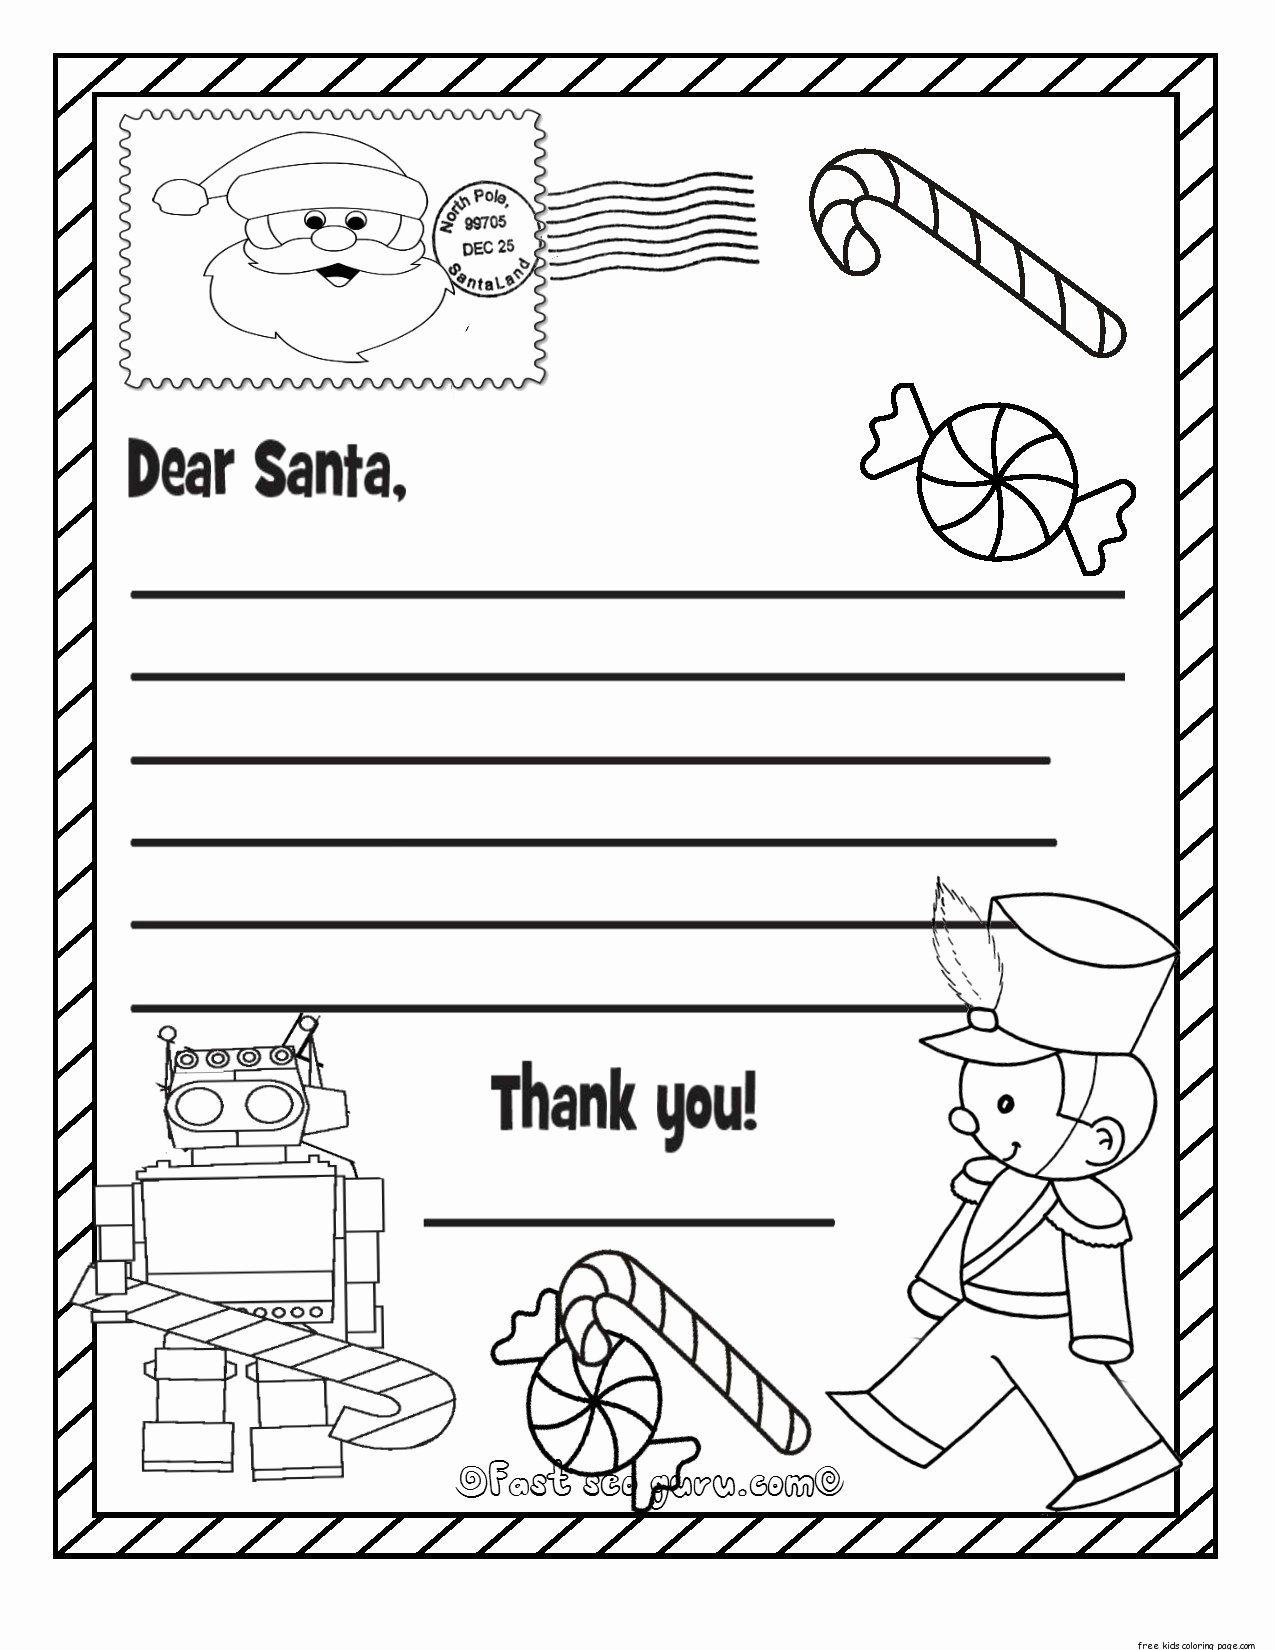 Printable Wish List Template Unique Printable Christmas Wish List to Santa Claus for Kids for